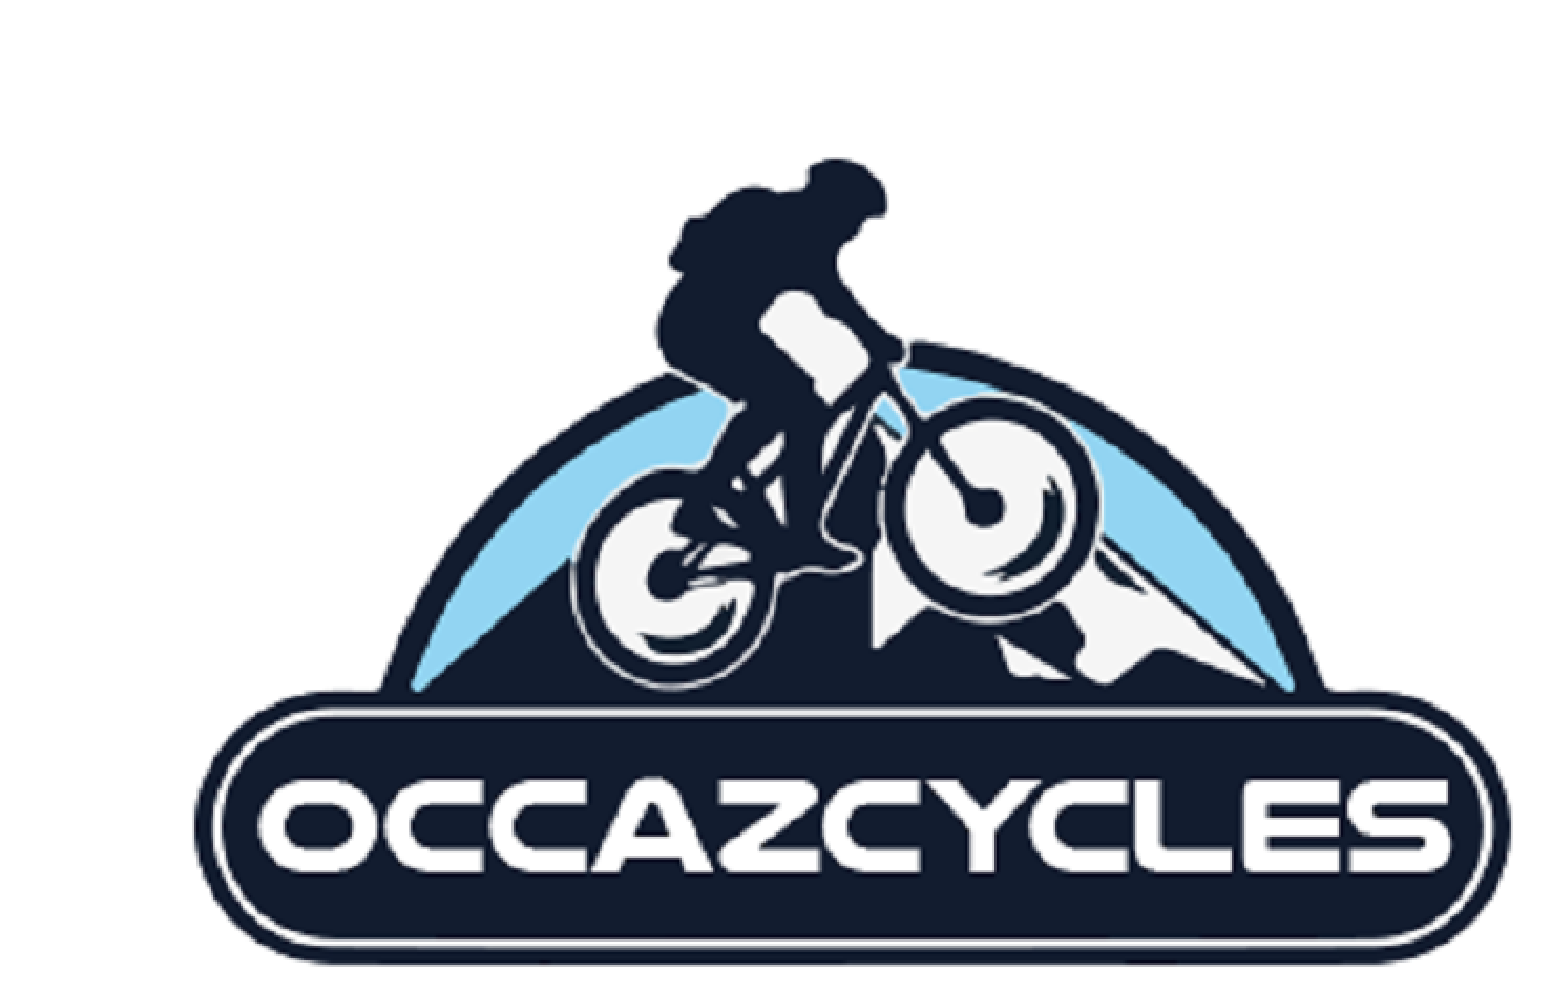 OCCAZCYCLES